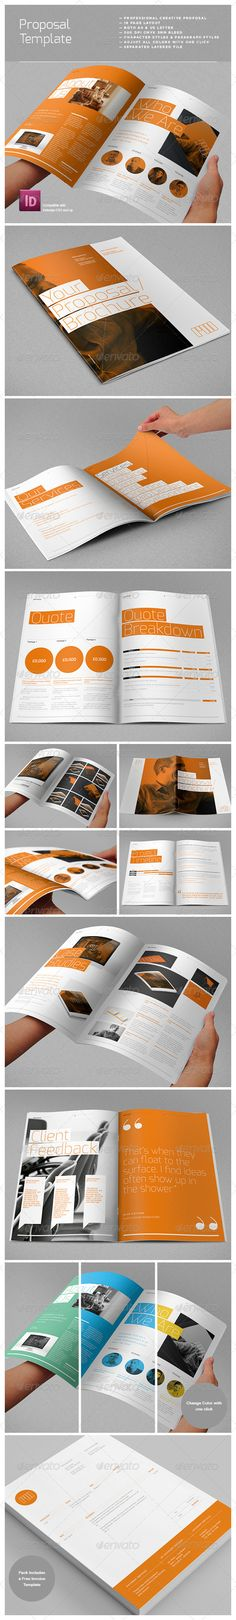 Agency Proposal Template - Proposals & Invoices Stationery